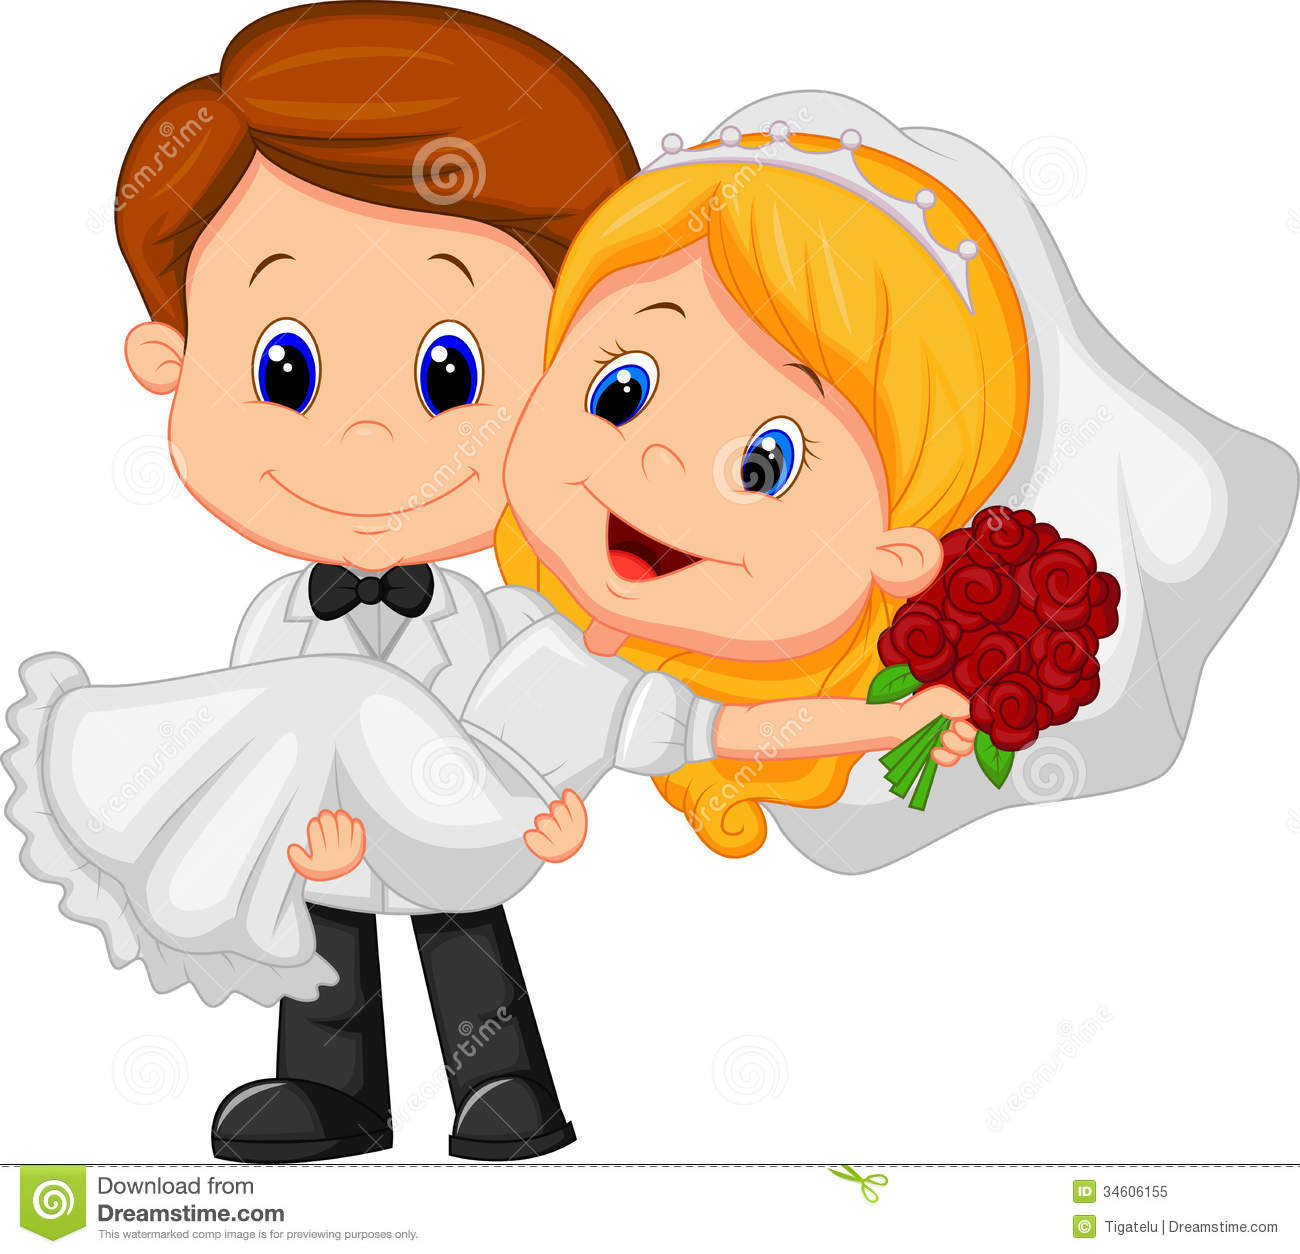 Bride and groom clipart 3 ... a76799a6dd6a3cbc69ecf324211ee5 .